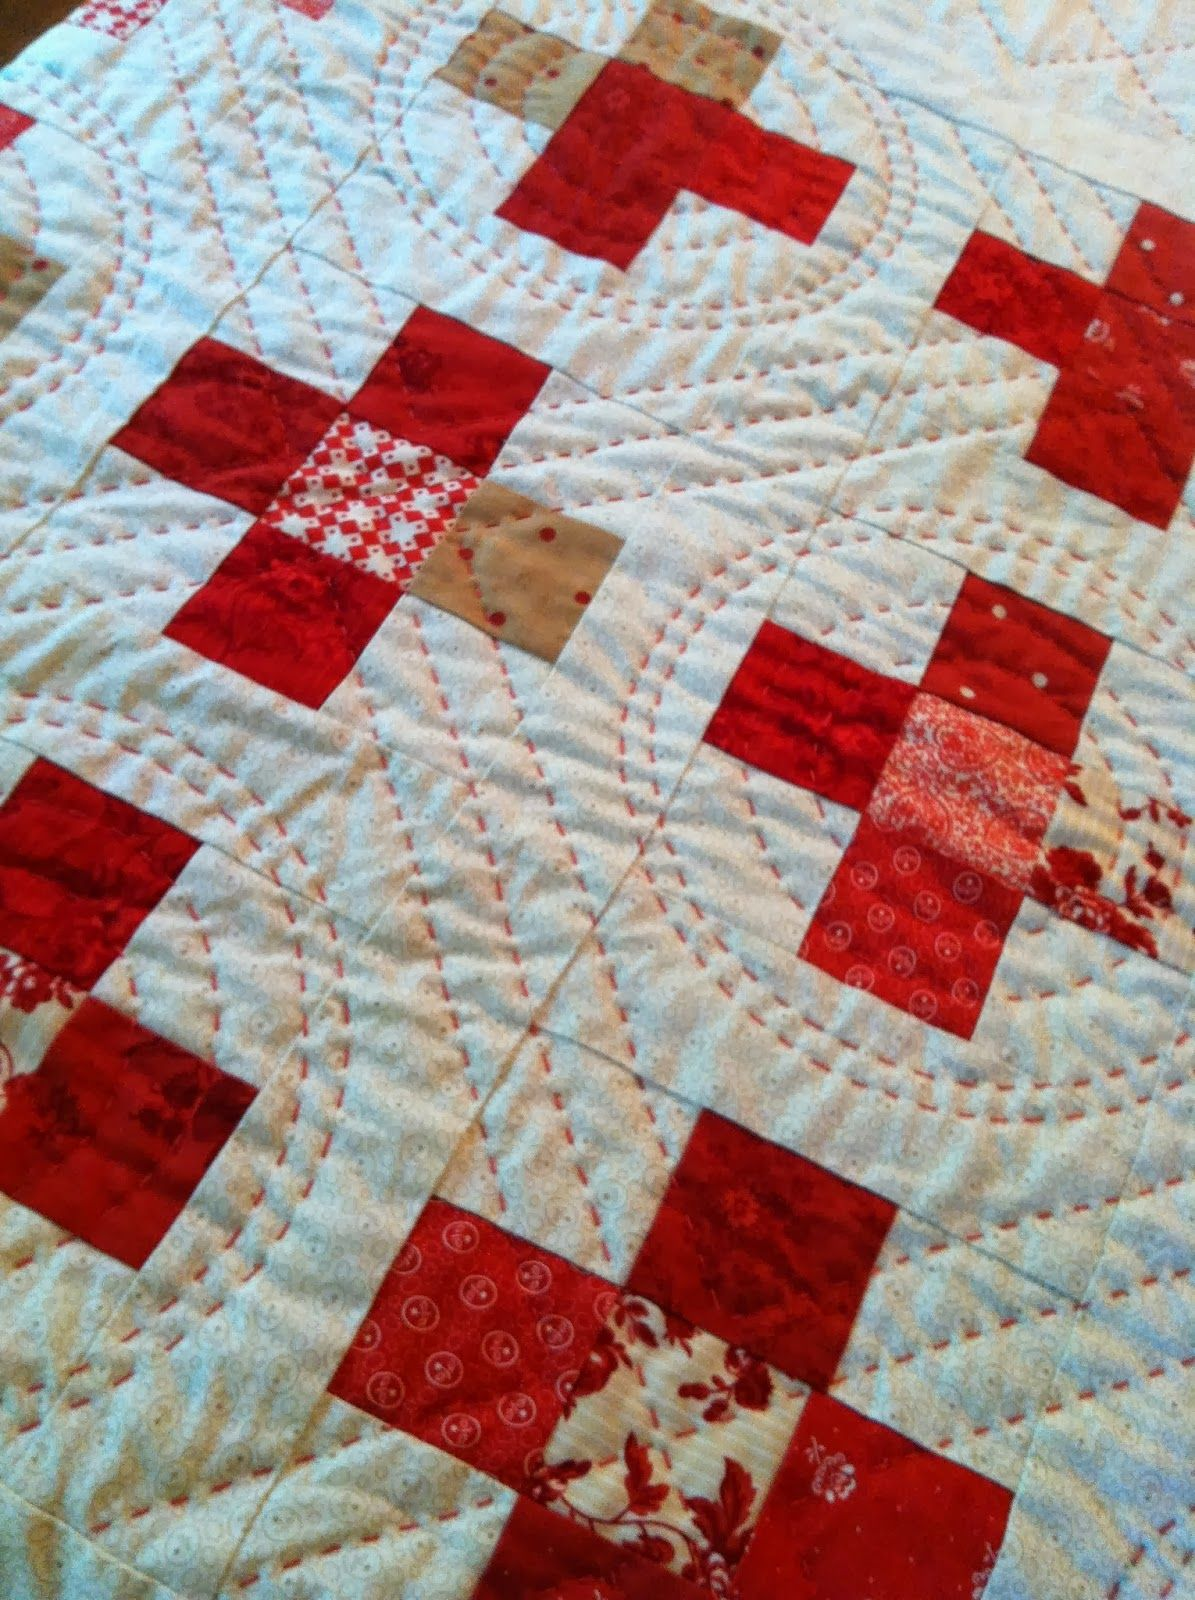 storehouseannex: a regular plus quilt, but with a little something ... : quilting hands - Adamdwight.com